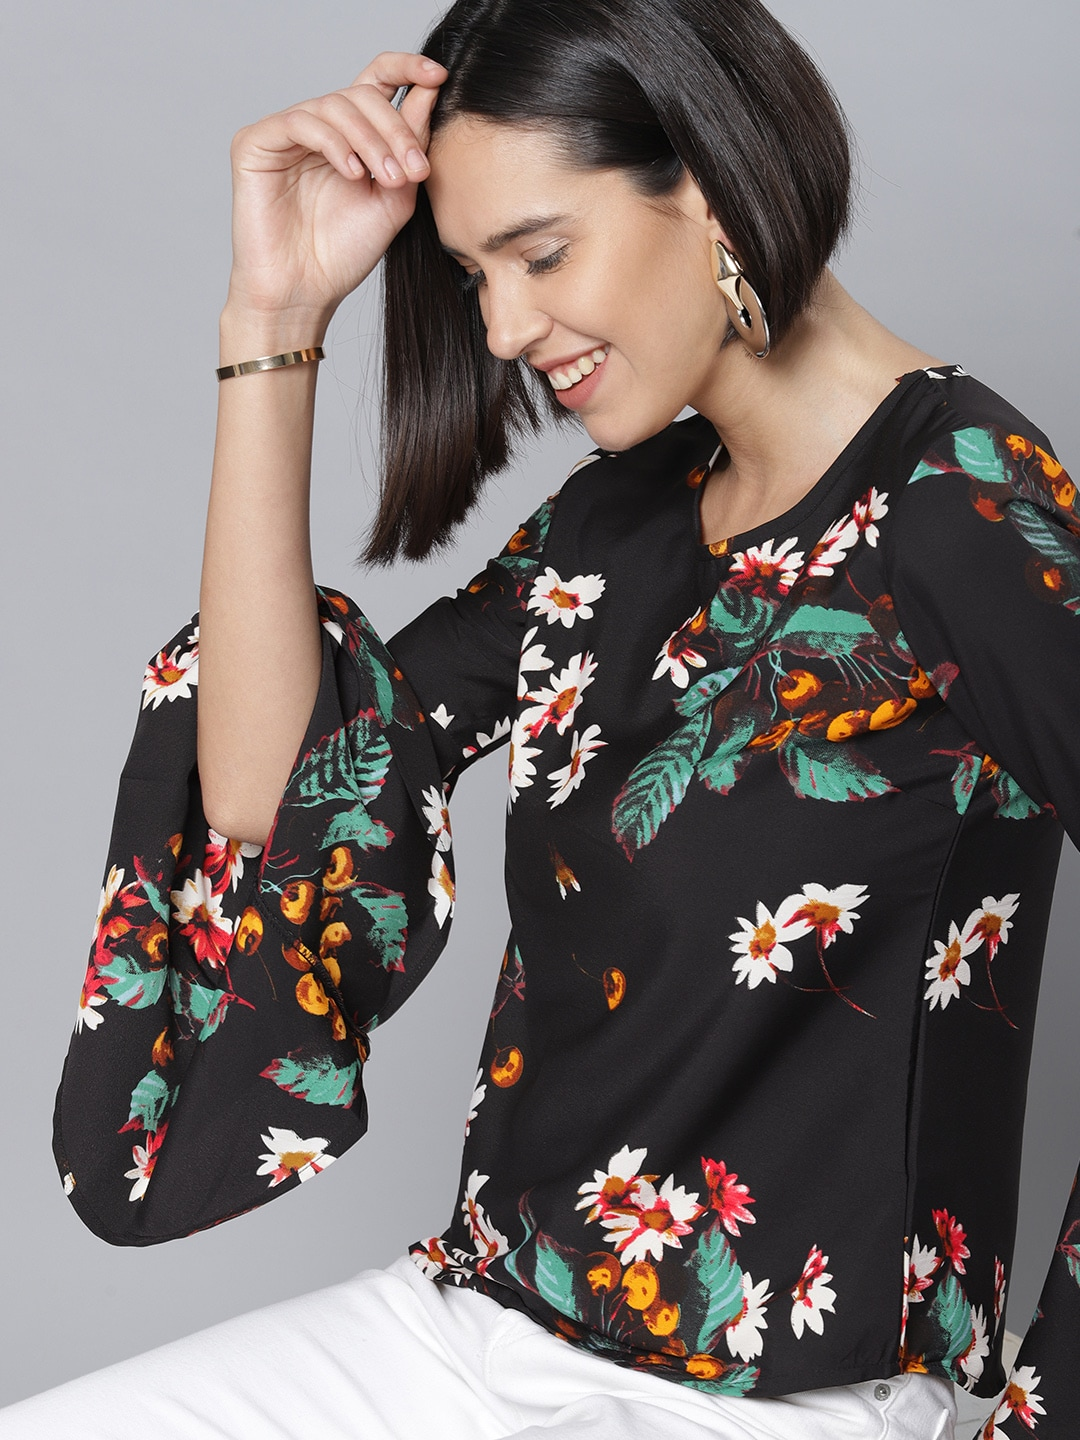 9b1e4dc111587 Floral Print Tops - Buy Floral Print Tops online in India